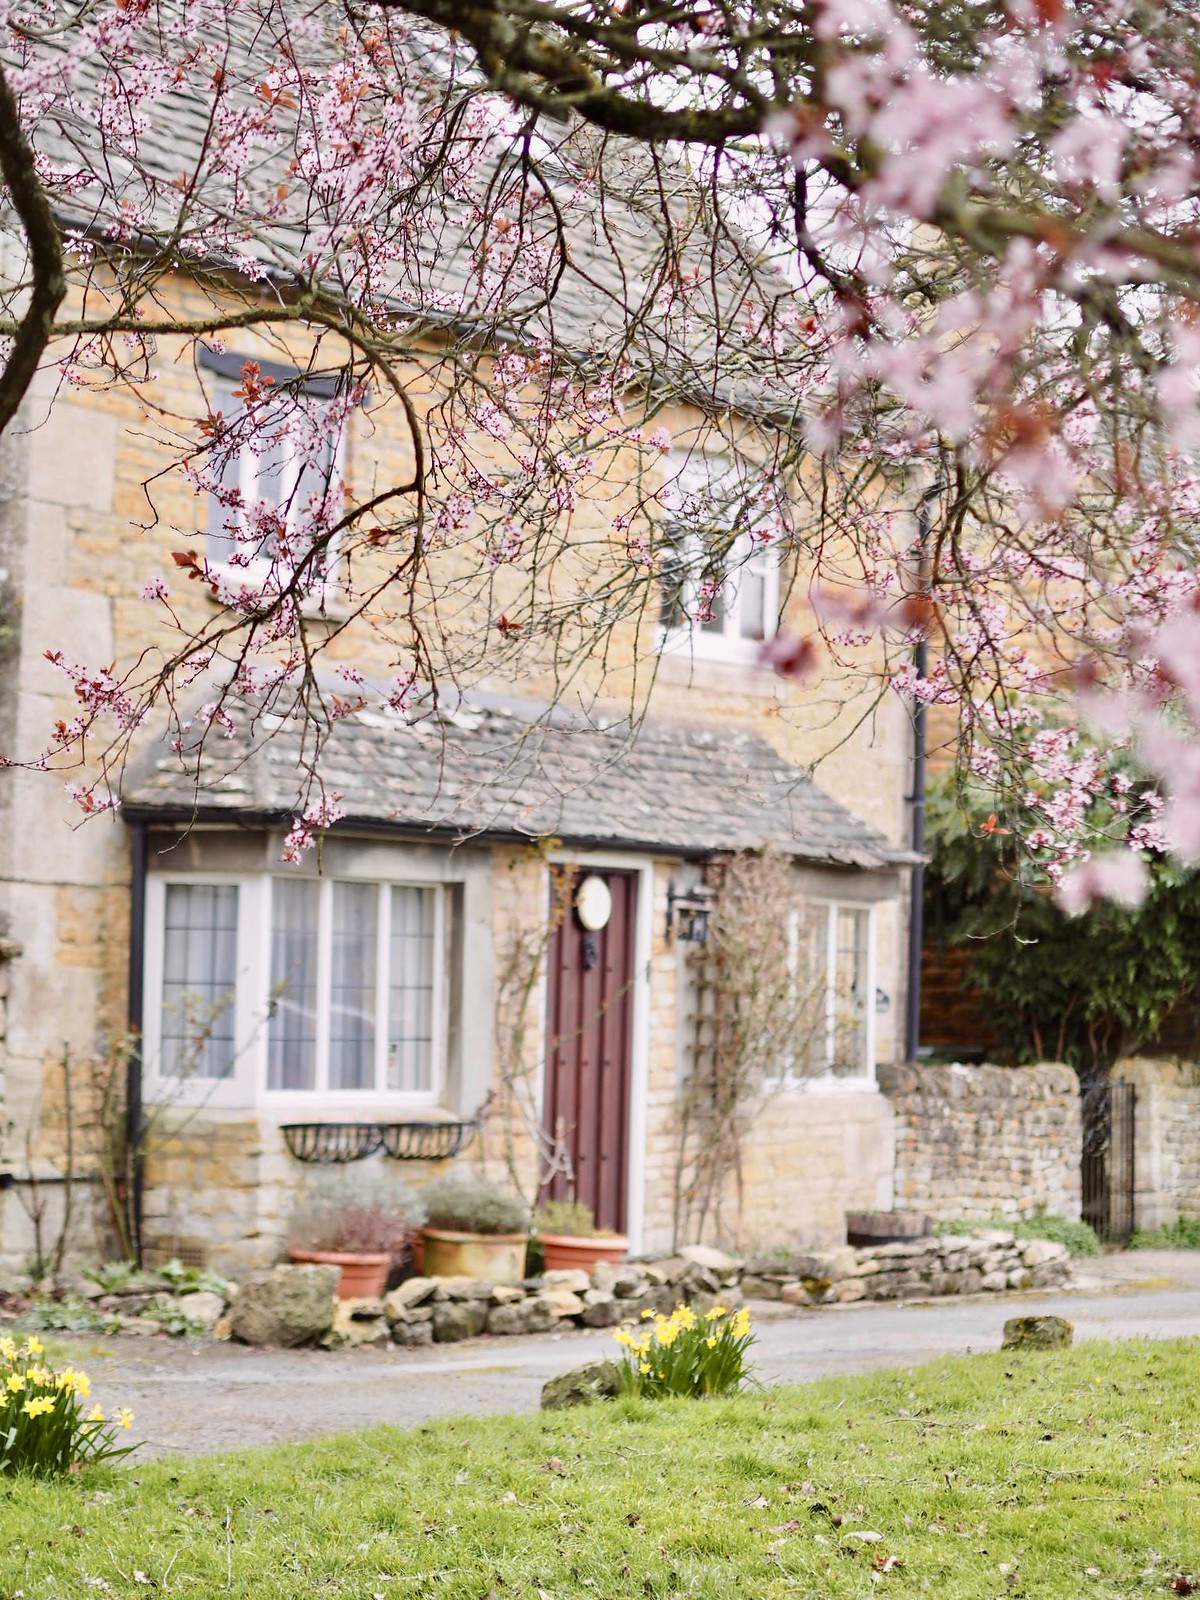 bourton on the water blossom cherry trees